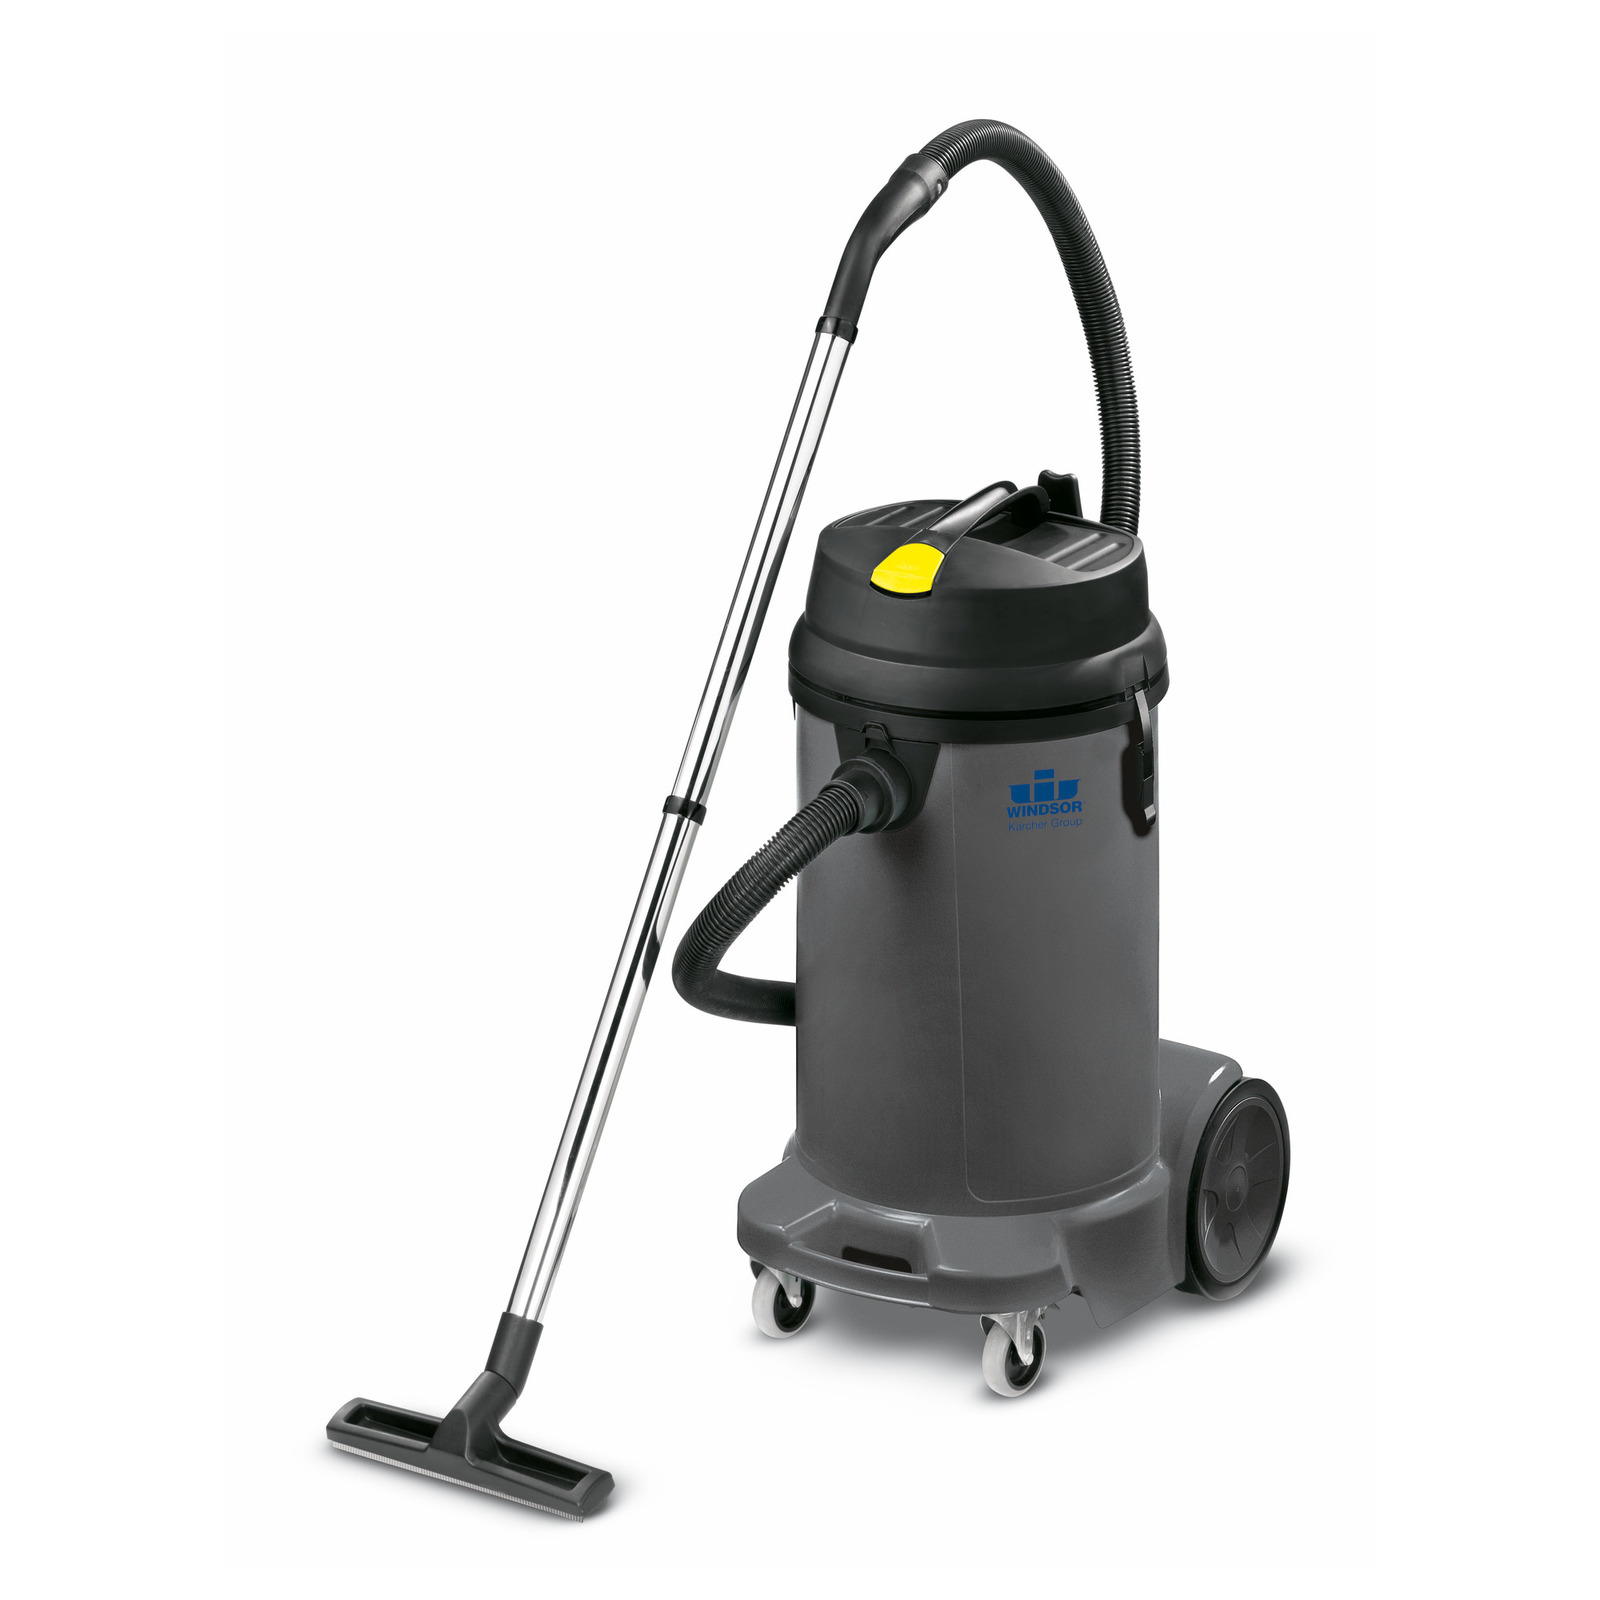 Windsor Recover 12 Gal Wet Dry Shop Vacuum 1.428-609.0 FREE Shipping 120 Volts Karcher NT 48/1 CUL 1.428-623.0